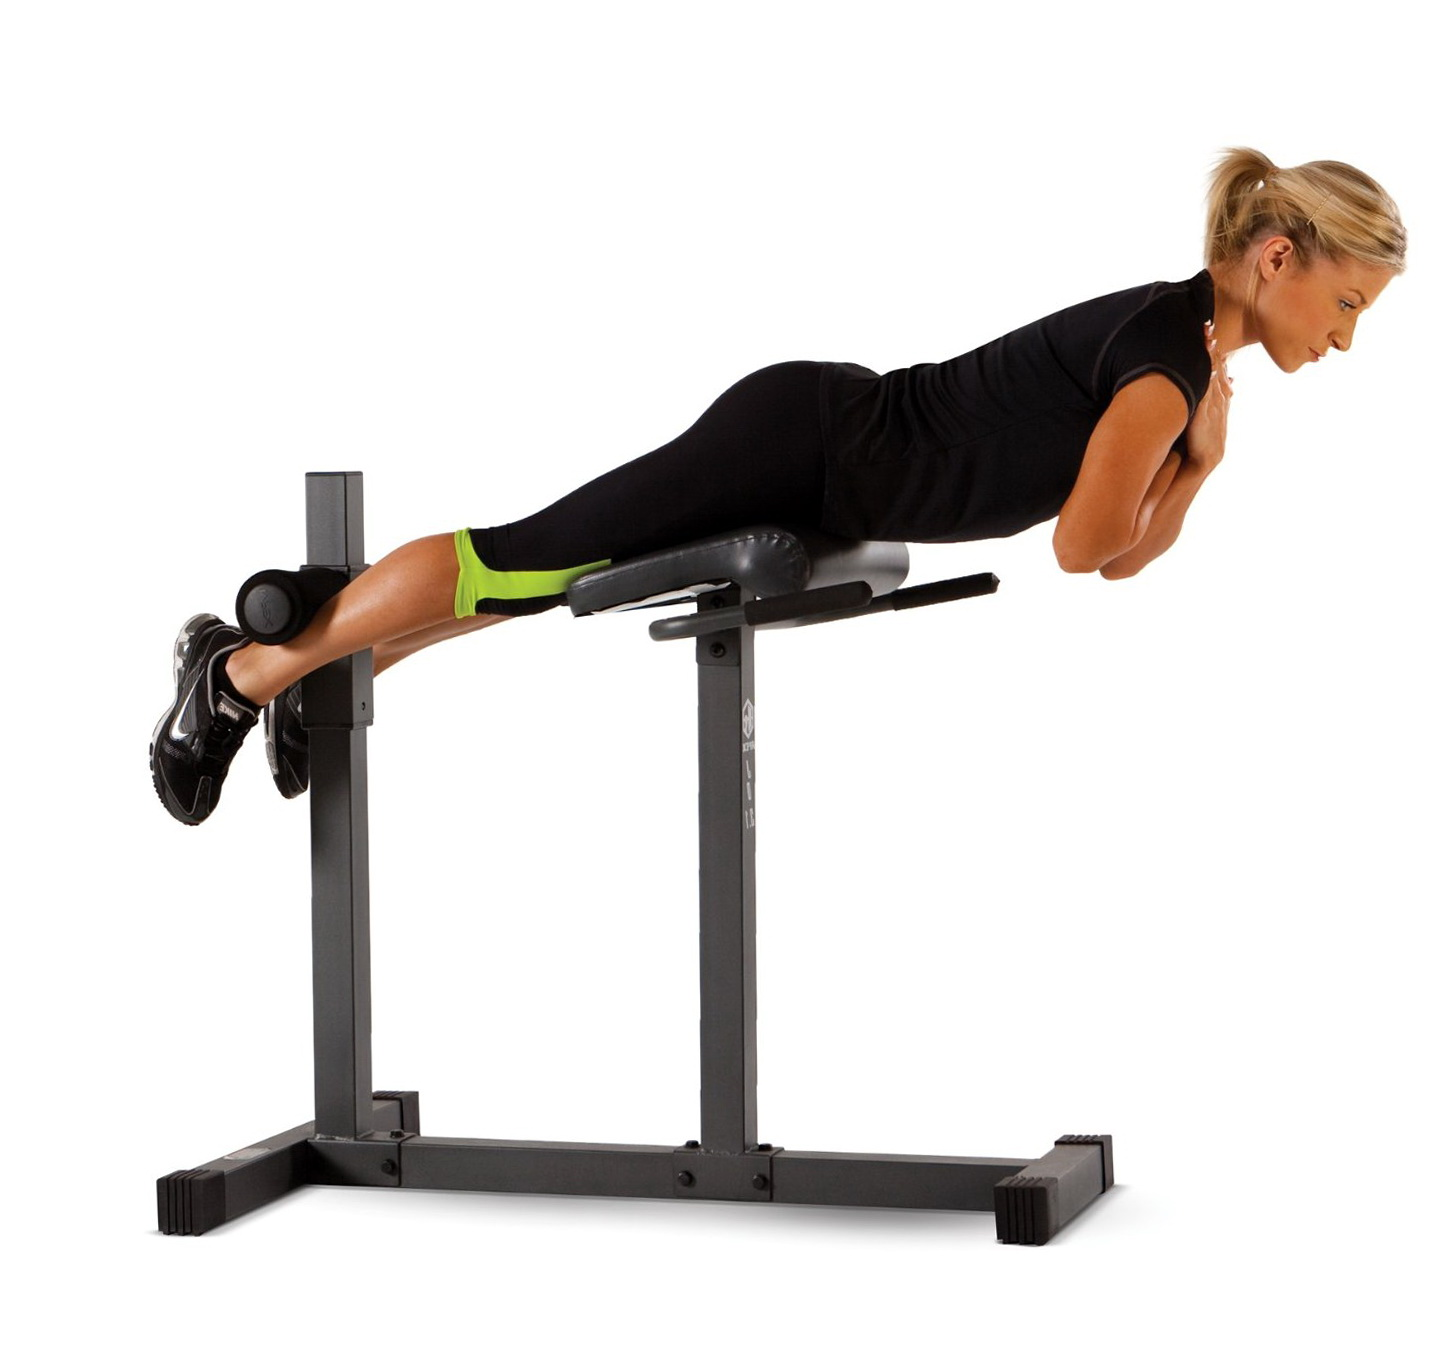 Back Extension Bench Exercises Home Design Ideas